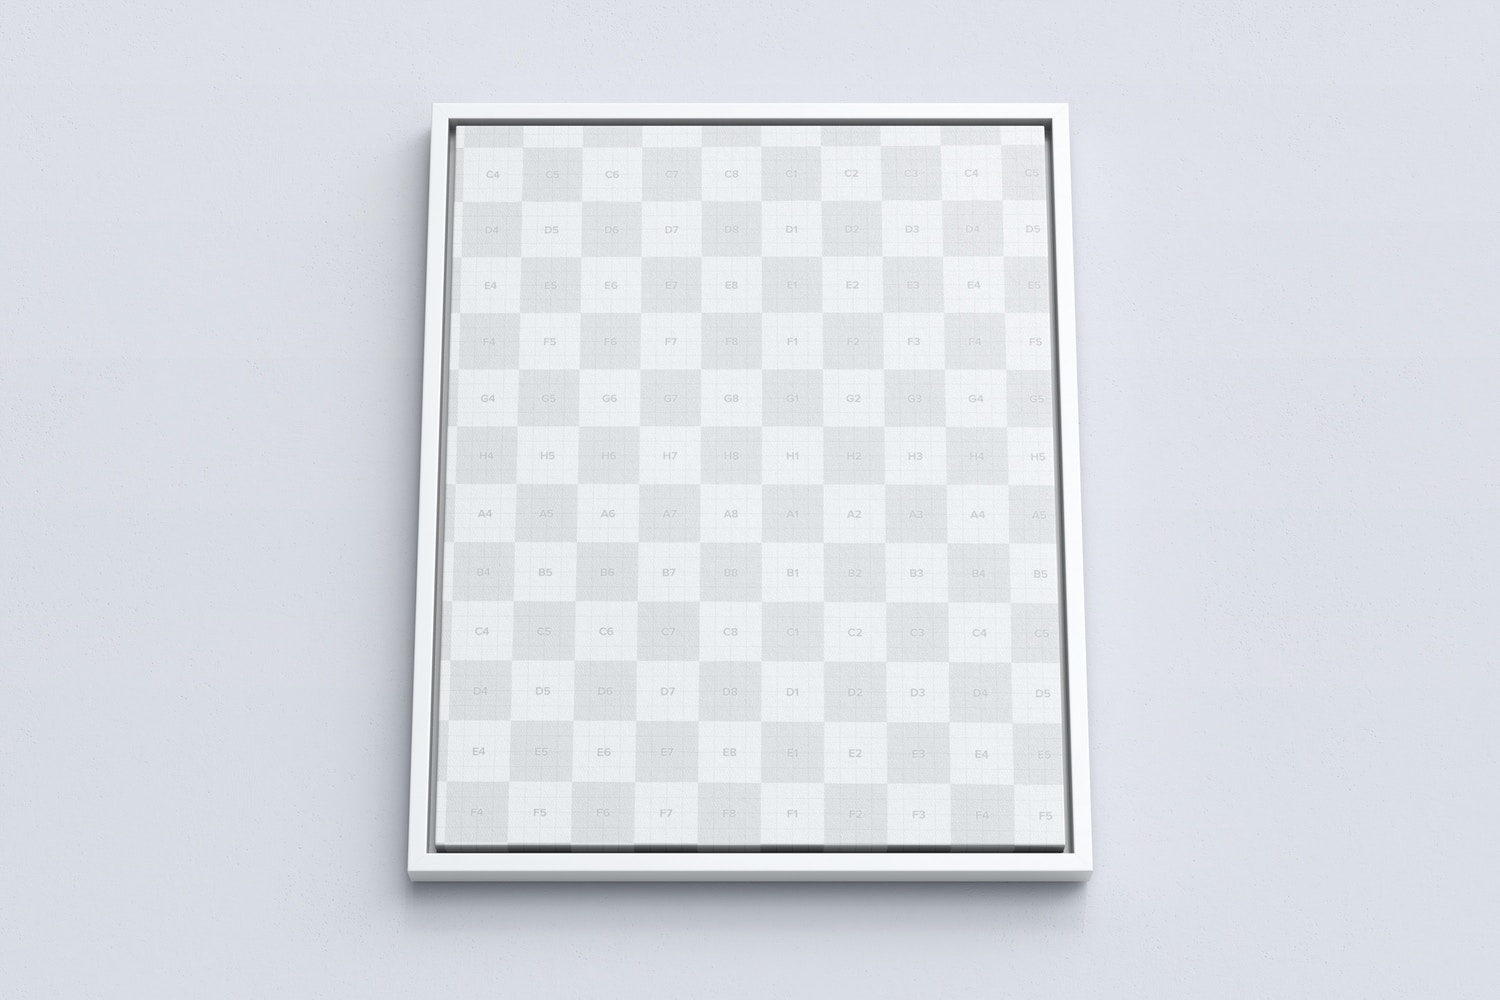 4:5 Portrait Canvas Mockup in Floater Frame, Bottom Front View